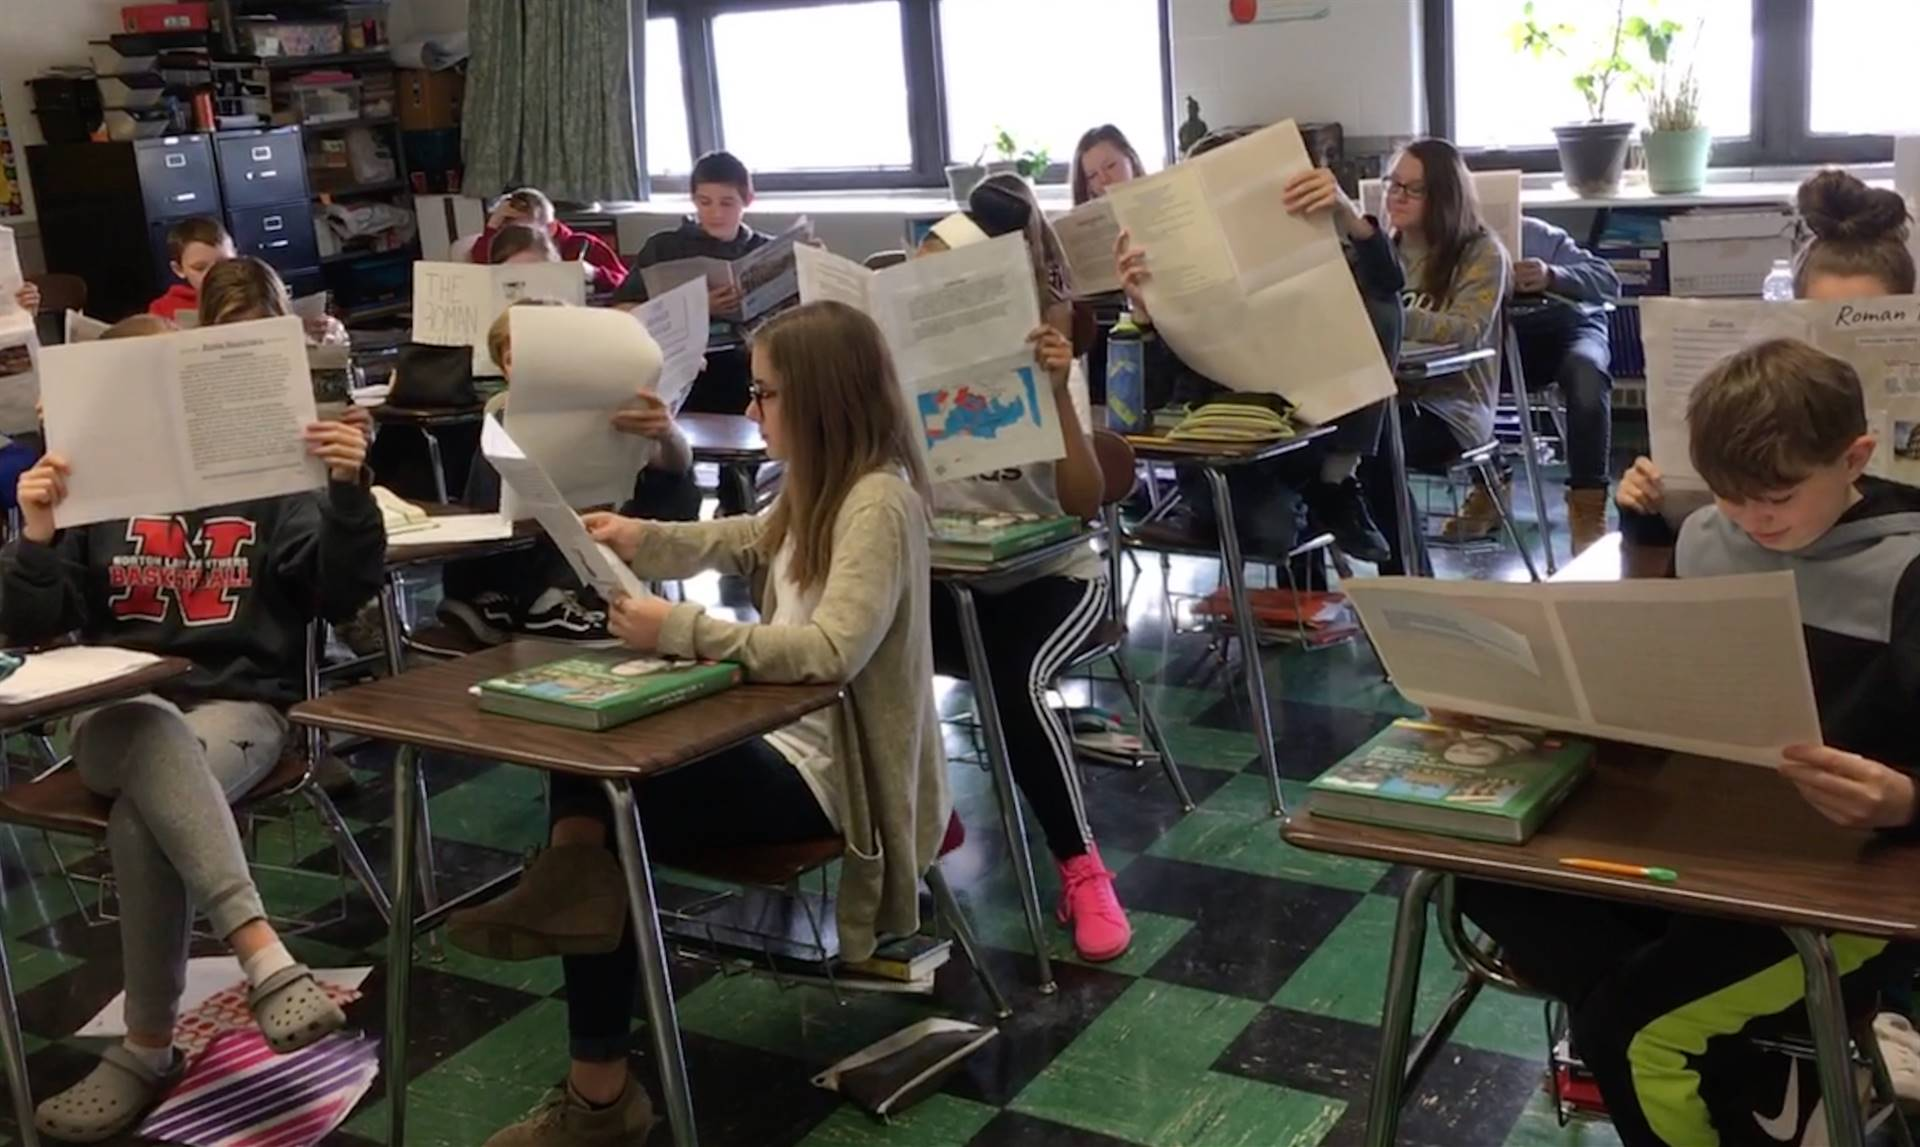 Mrs. Majewski's World History class is reading the newspapers they created for a class project.